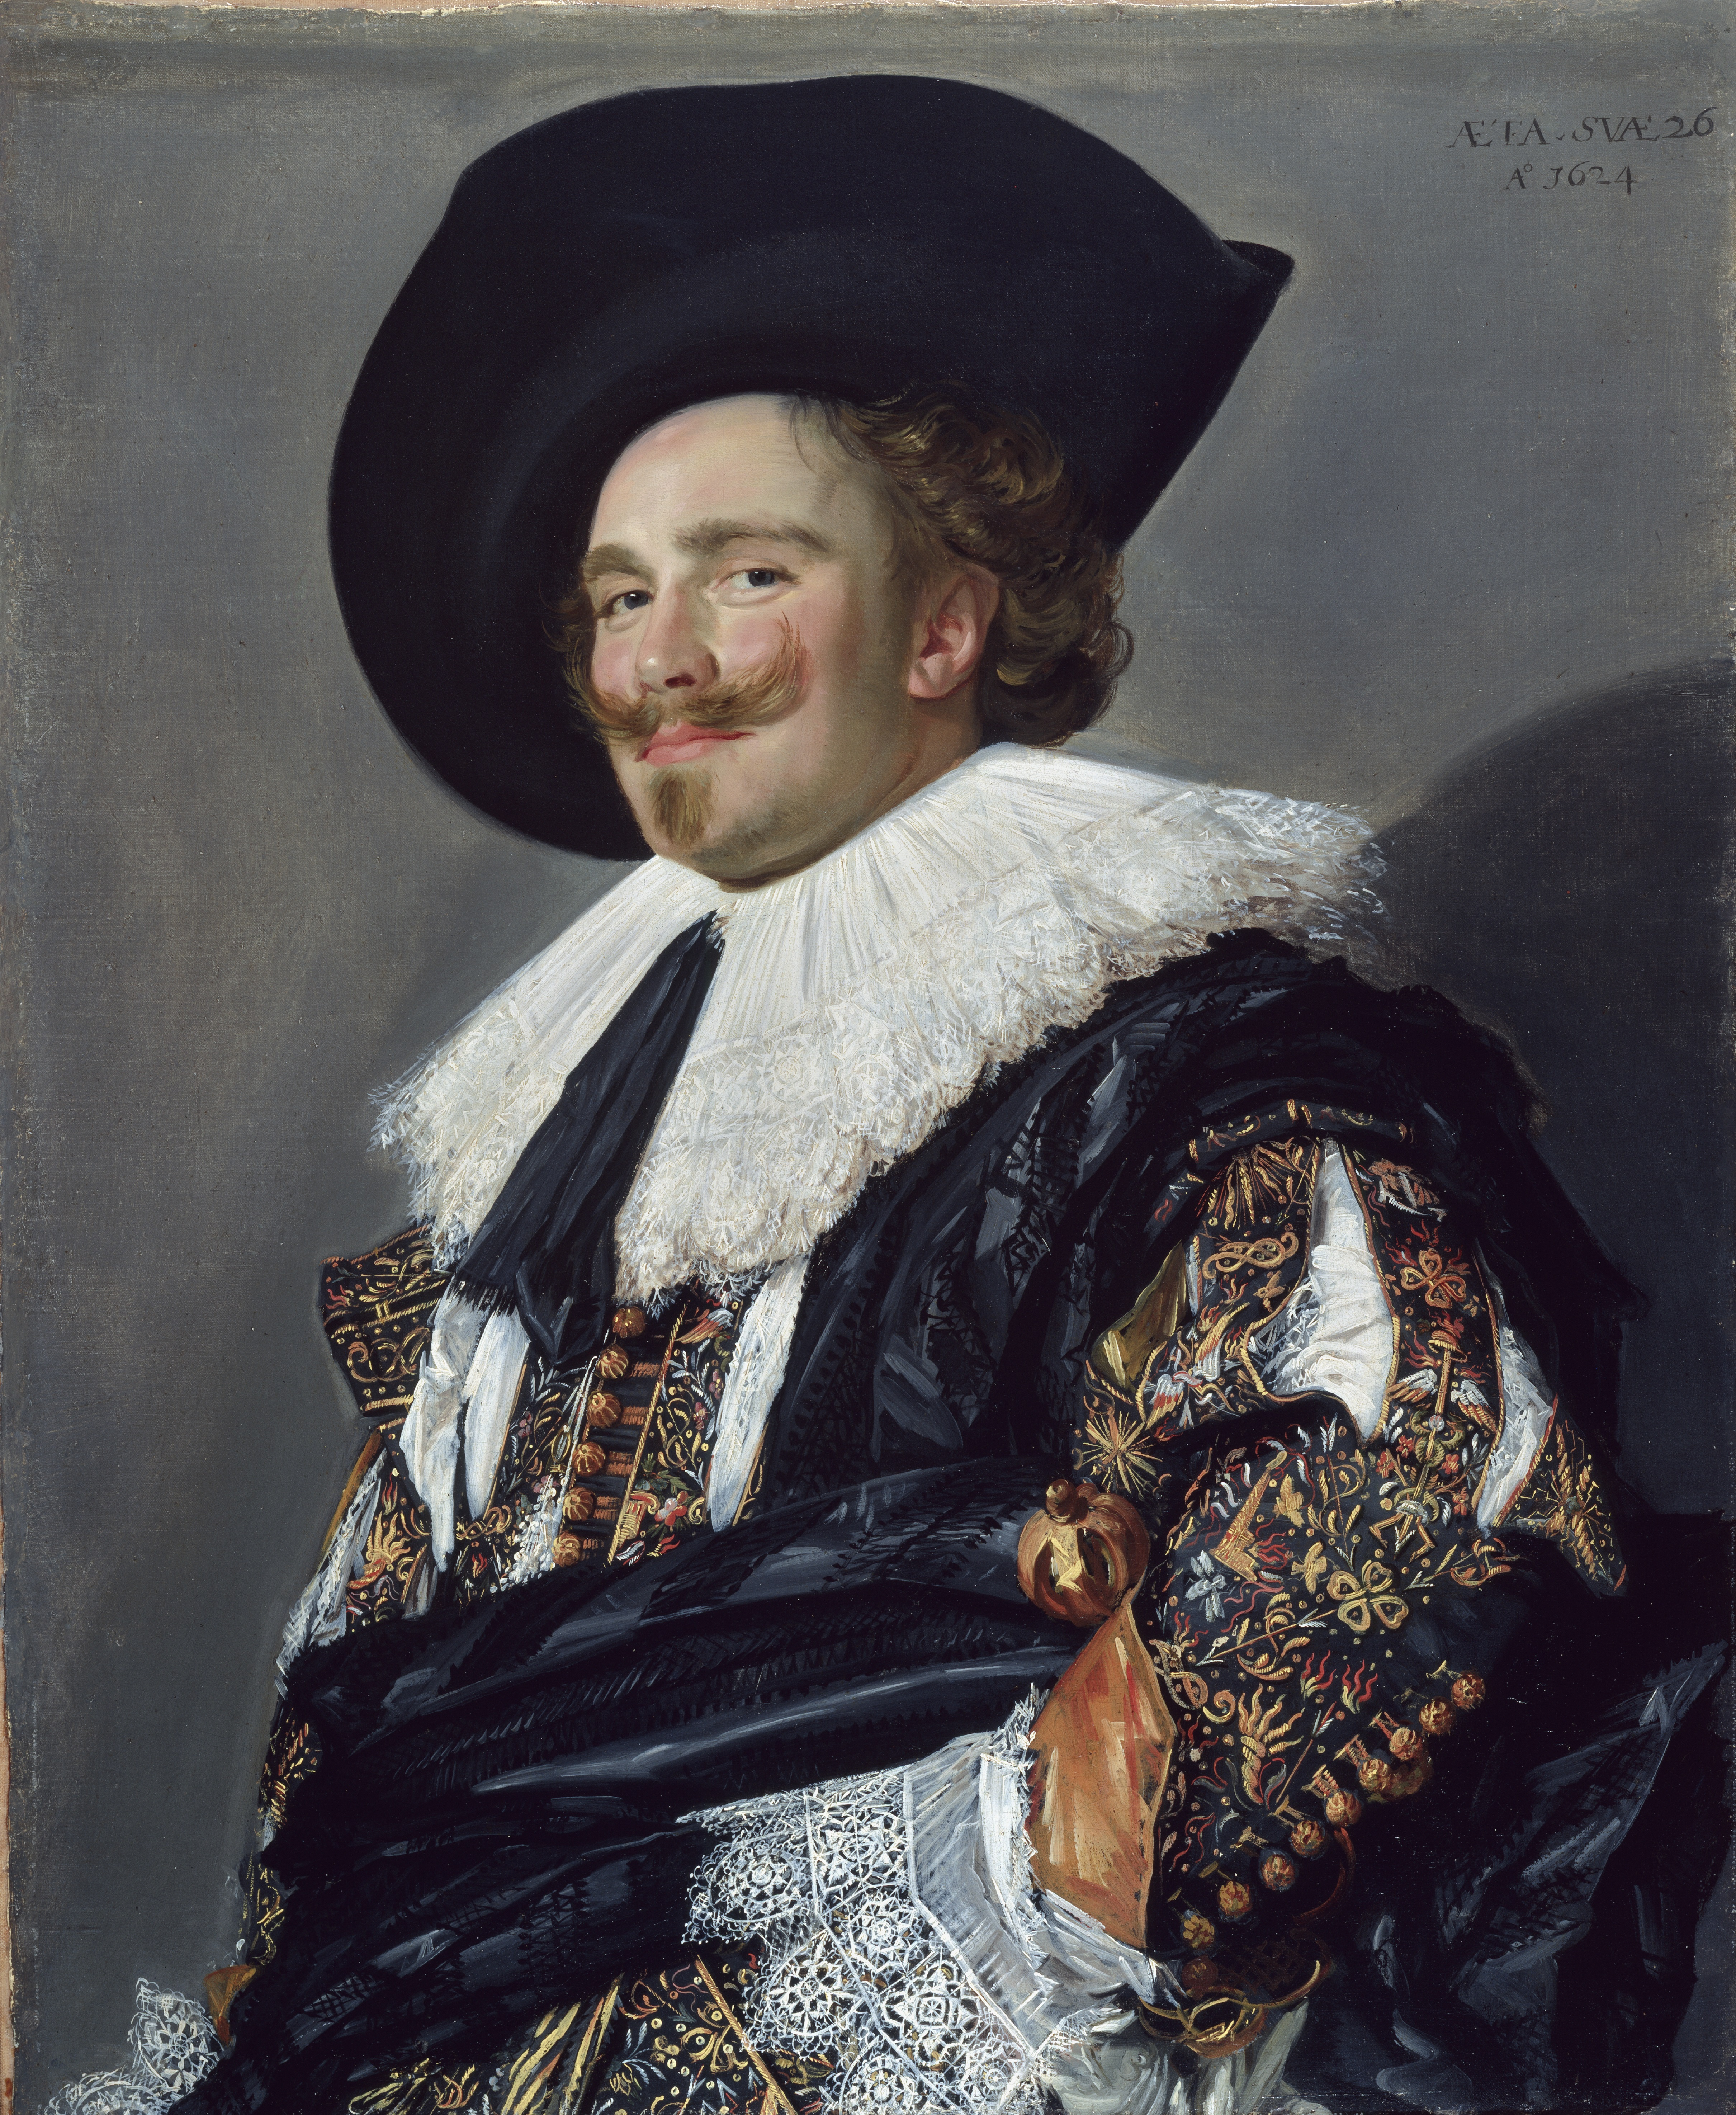 Frans Hals: The Laughing Cavalier, oil on canvas, 83 x 67.3 cm, 1624, (London: The Wallace Collection, Object No. P84), image courtesy of The Wallace Collection